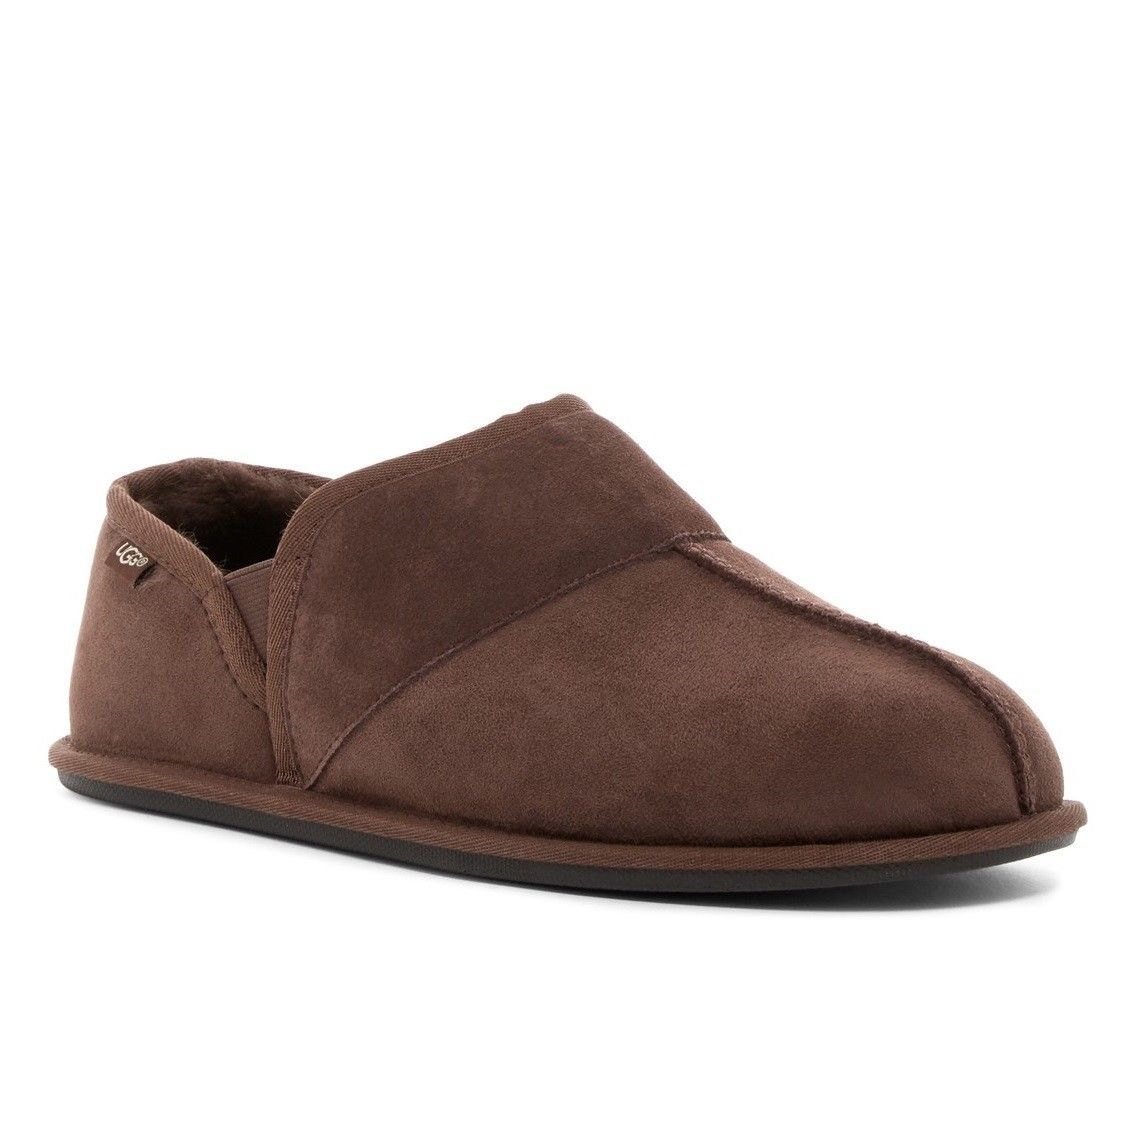 c8a6f670dfe6 UGG For Men M Leisure Slip-On UGGpure(TM) and 50 similar items